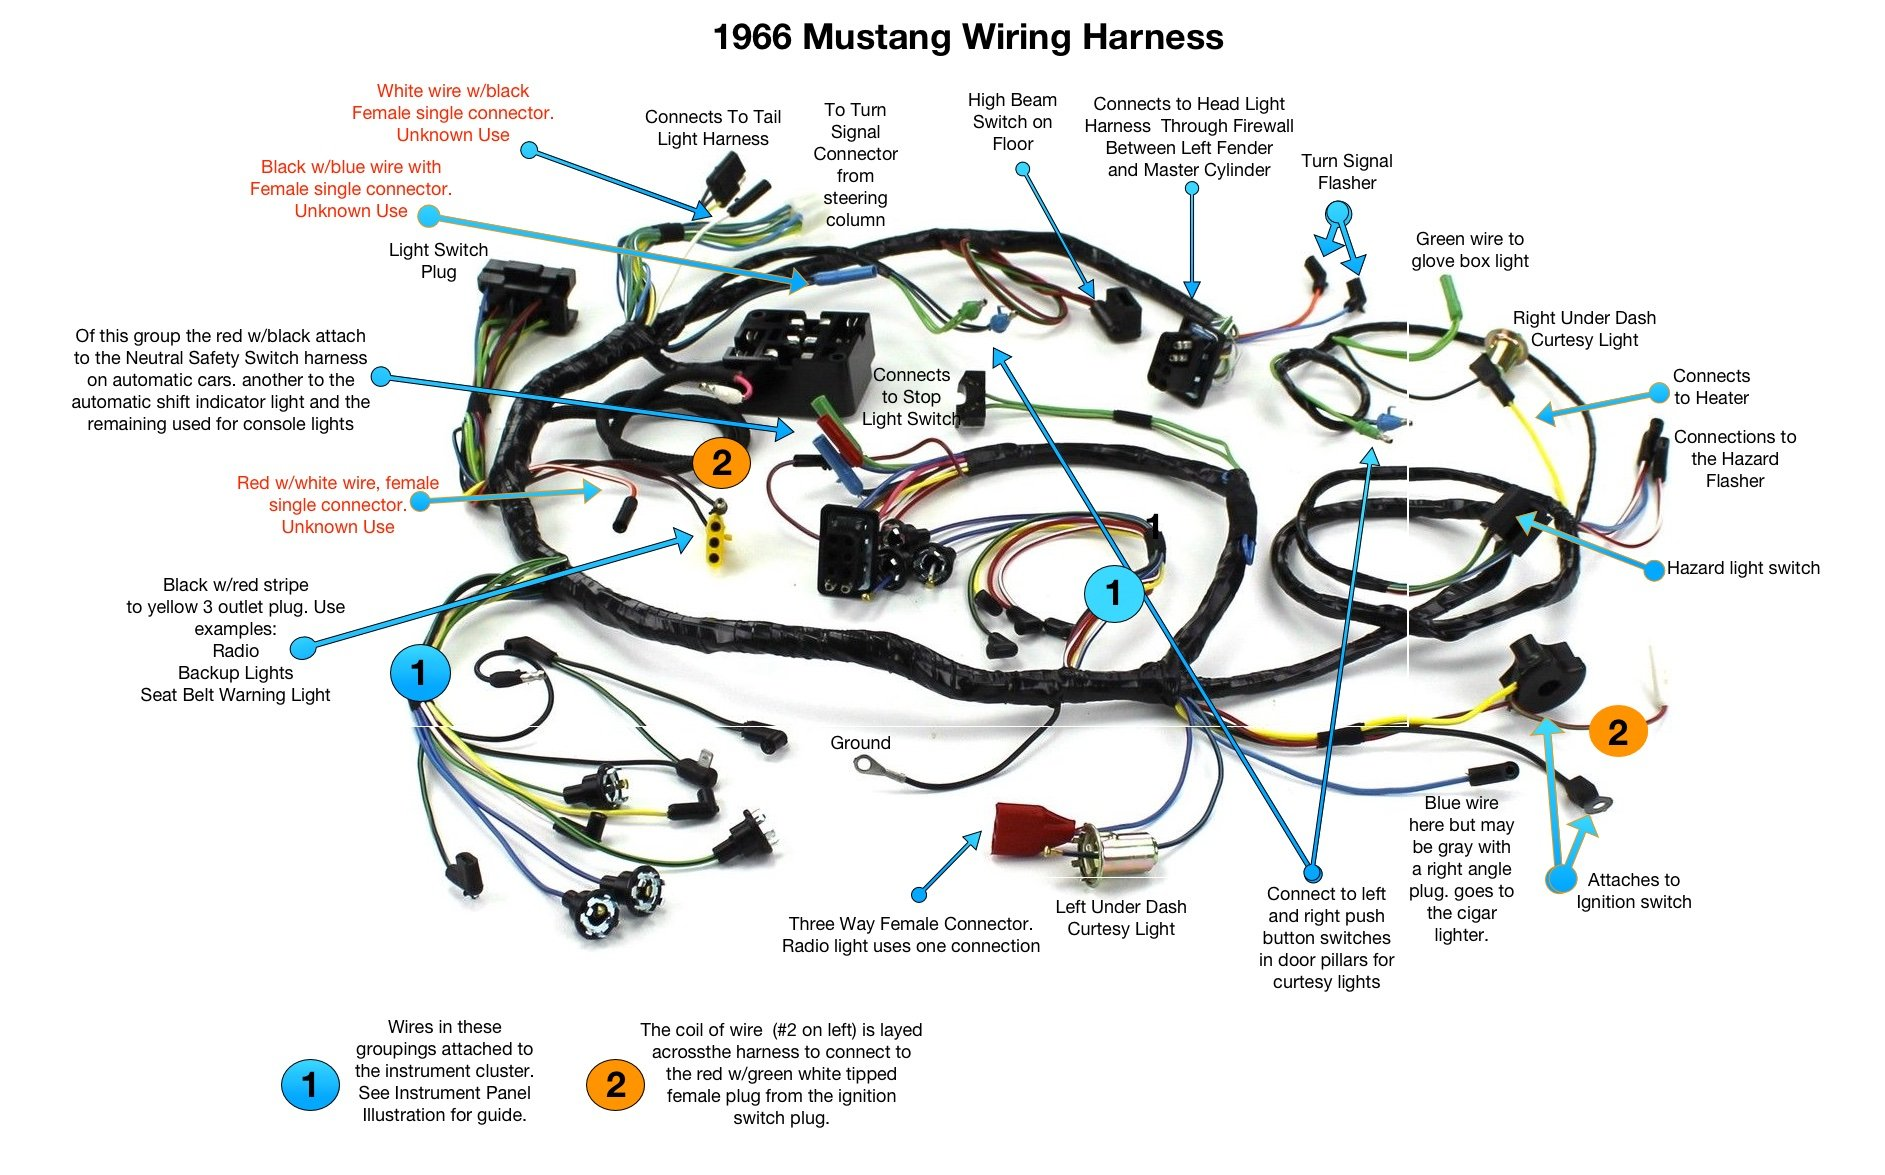 Ford Wire Harness Ford Engine Wiring Harness Need A Wiring Harness